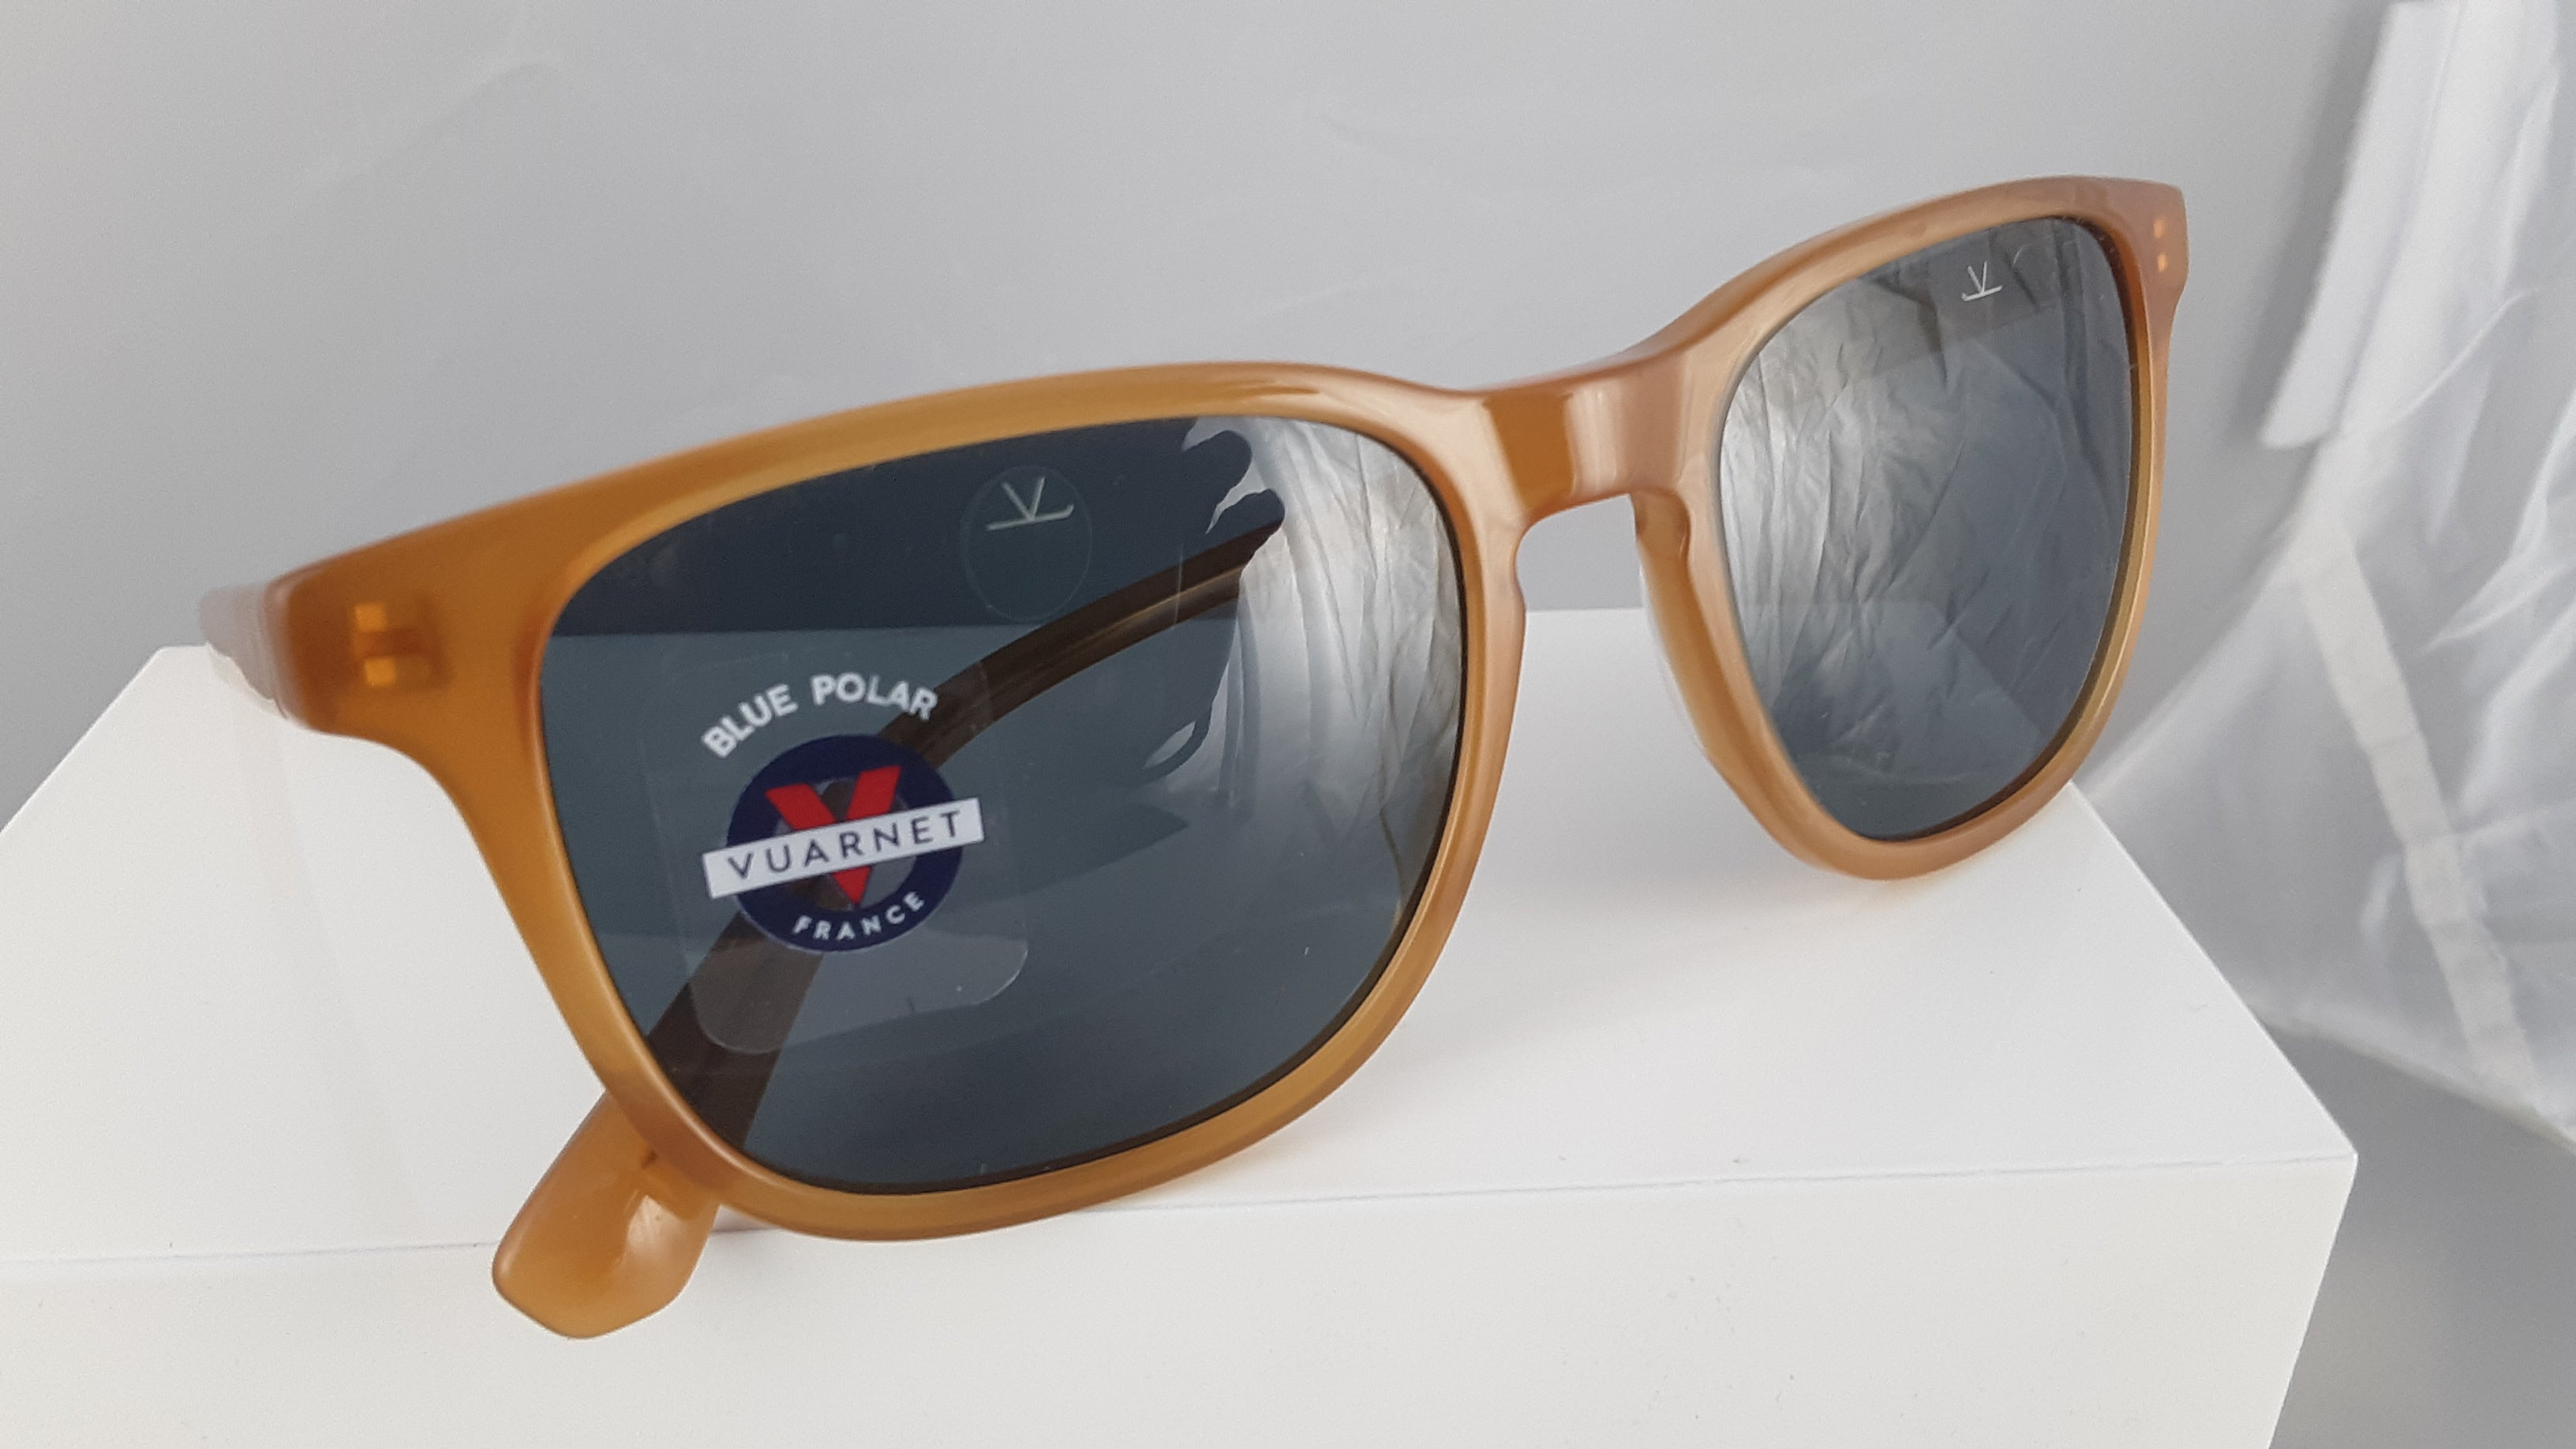 Vuarnet blue polar orange brown sunglasses